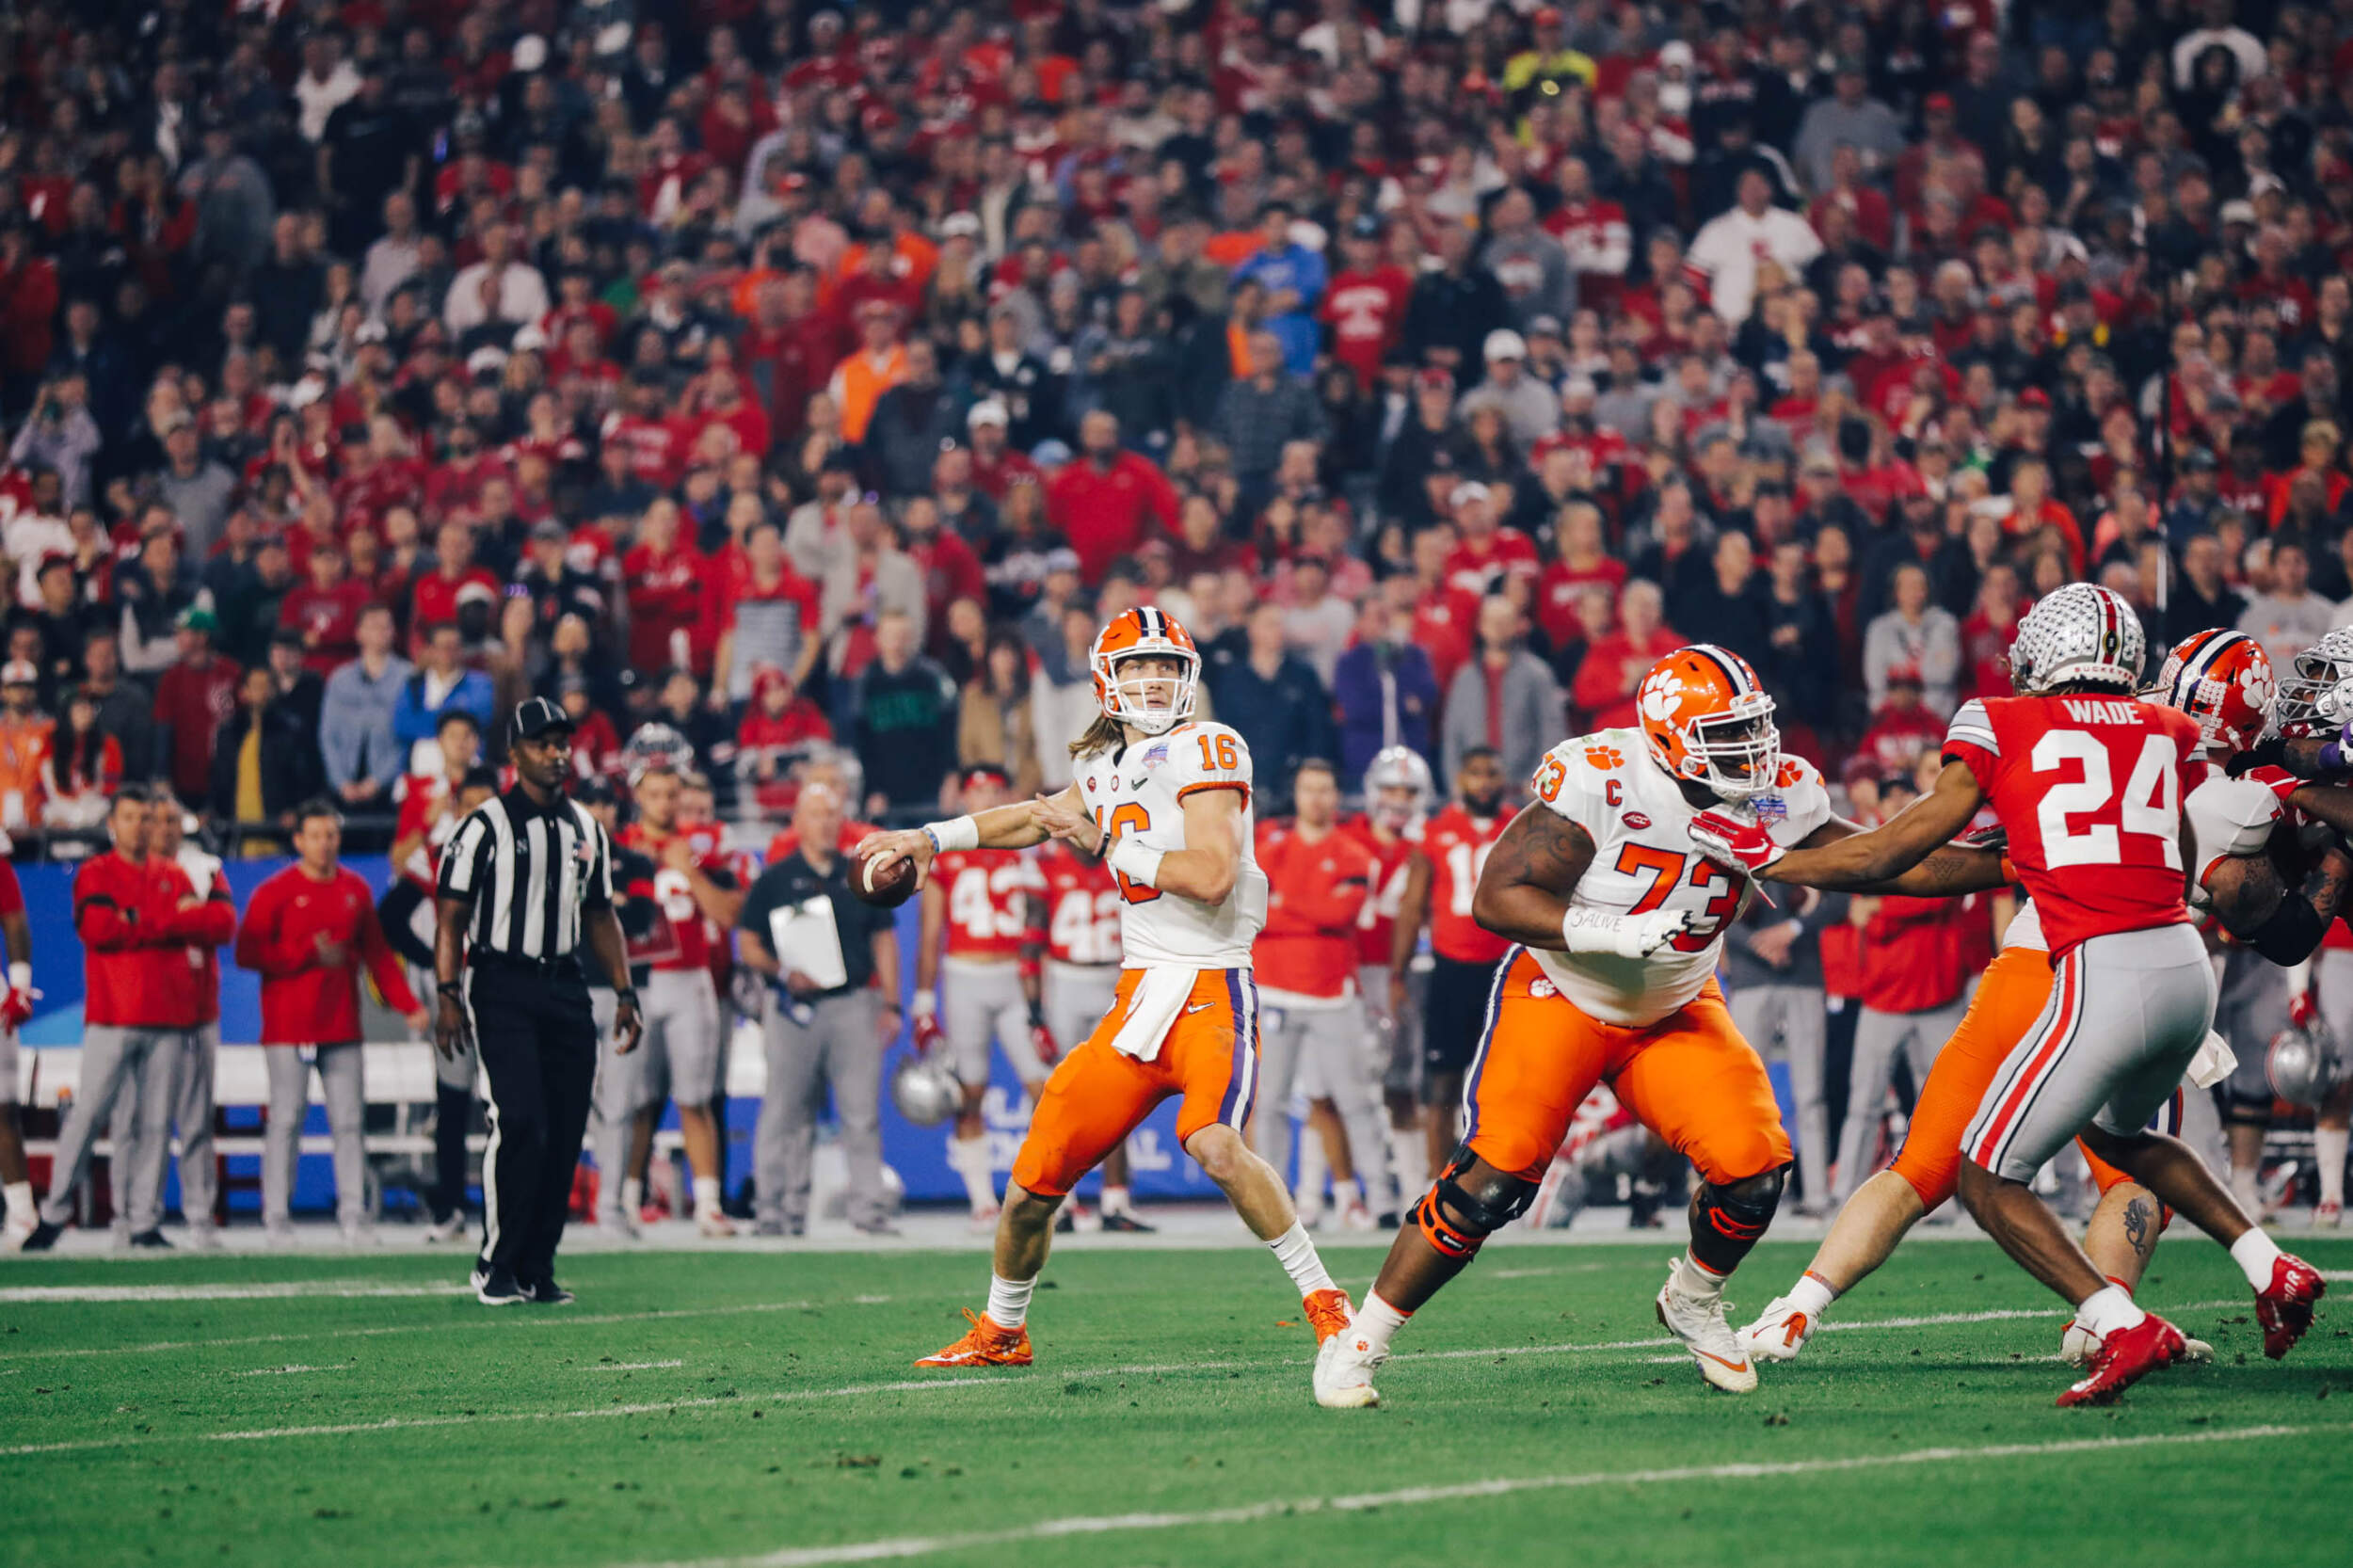 Clemson Tigers quarterback Trevor Lawrence attempts a pass against the Ohio State Buckeyes in the PlayStation Fiesta Bowl in the 2019 College Football Playoff